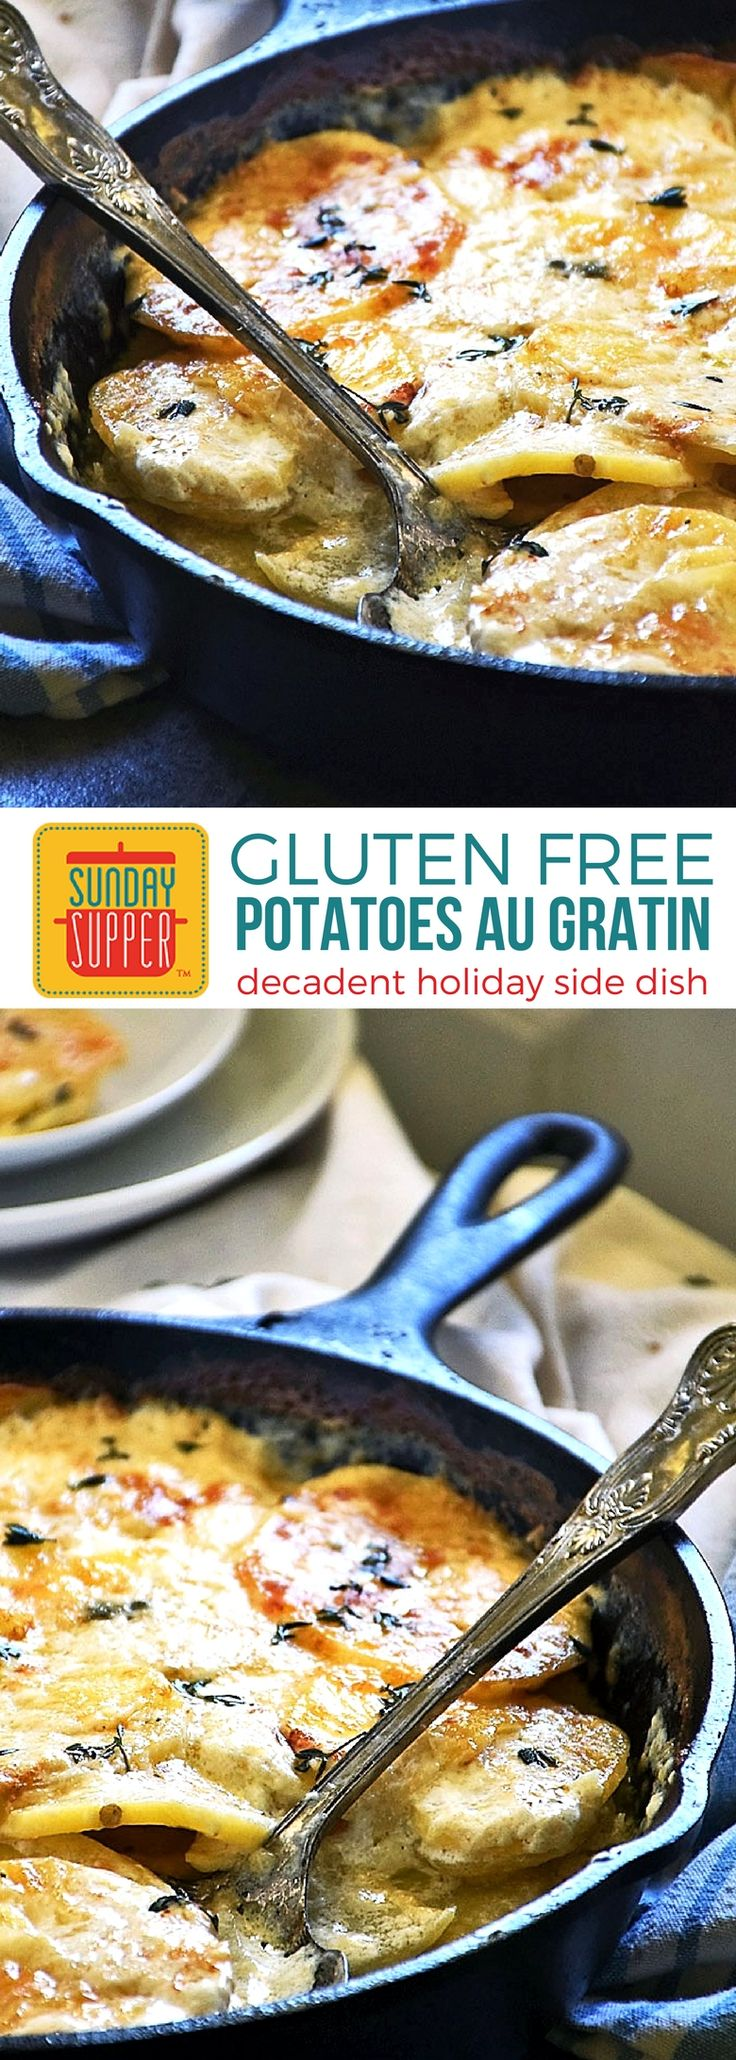 Gluten Free Au Gratin Potatoes is the ultimate side dish for the holidays. An easy recipe with creamy garlicky potatoes & a cheesy crust everyone will love! Naturally gluten free, you'll want to serve this delicious side dish for Thanksgiving, Christmas, Easter, and any time you want an ultimate comfort food recipe to enjoy. #SundaySupper #GlutenFree #HolidayRecipes